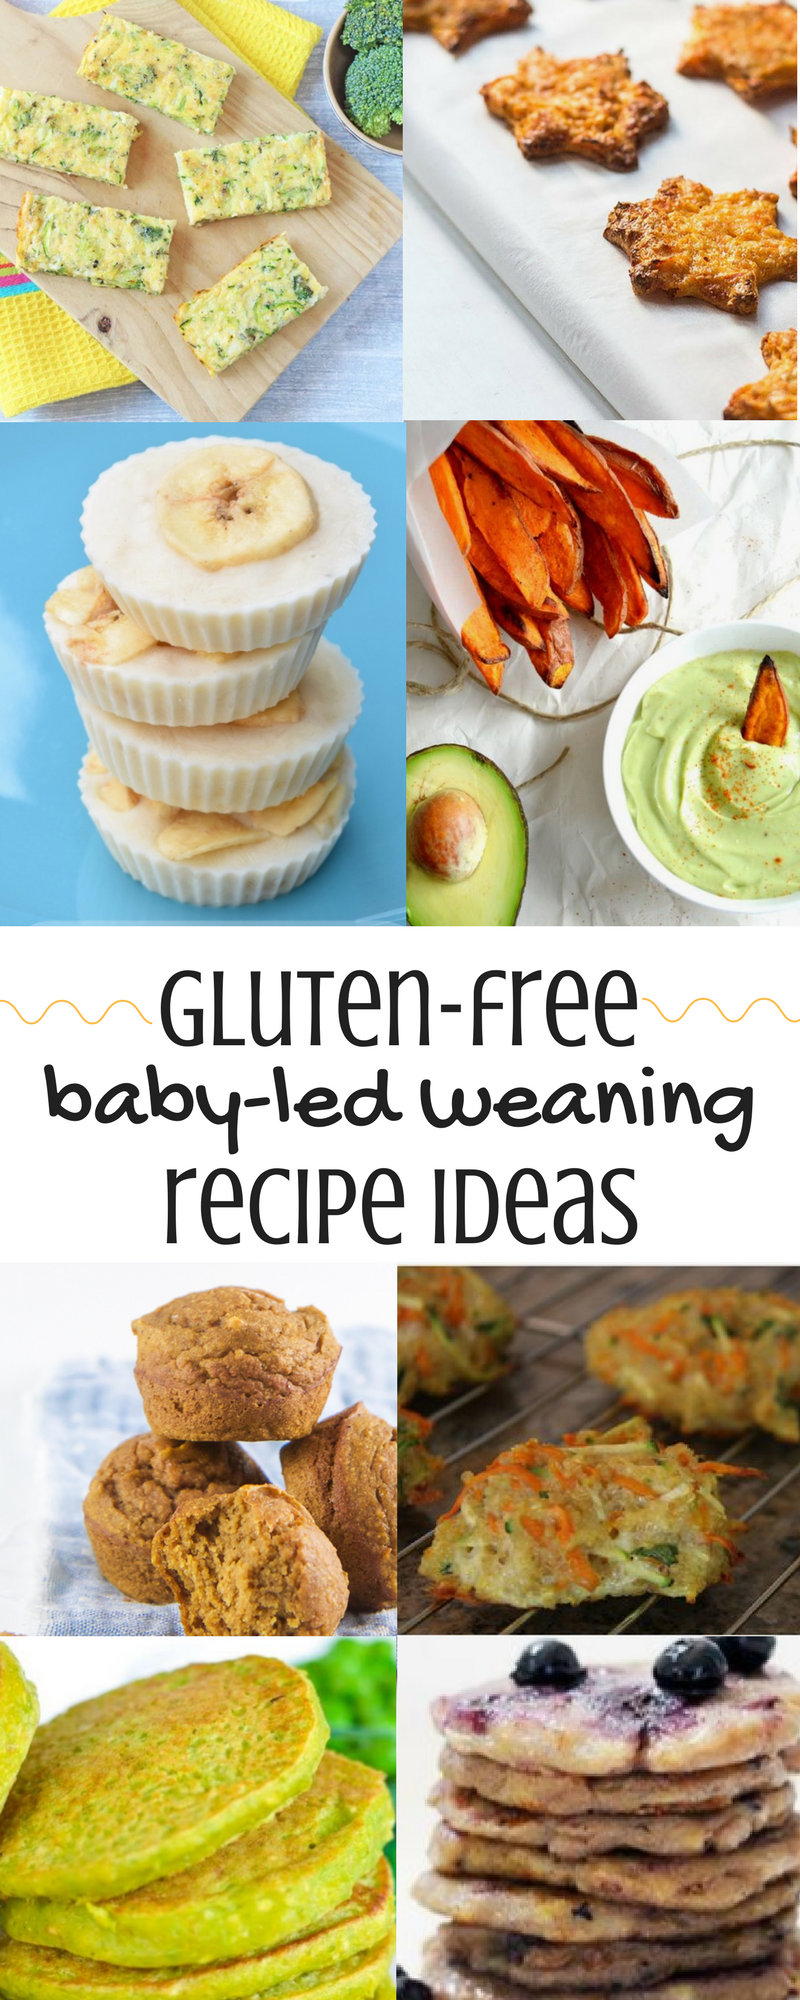 Best gluten free foods for baby led weaning easy gluten free best gluten free foods for baby led weaning forumfinder Choice Image